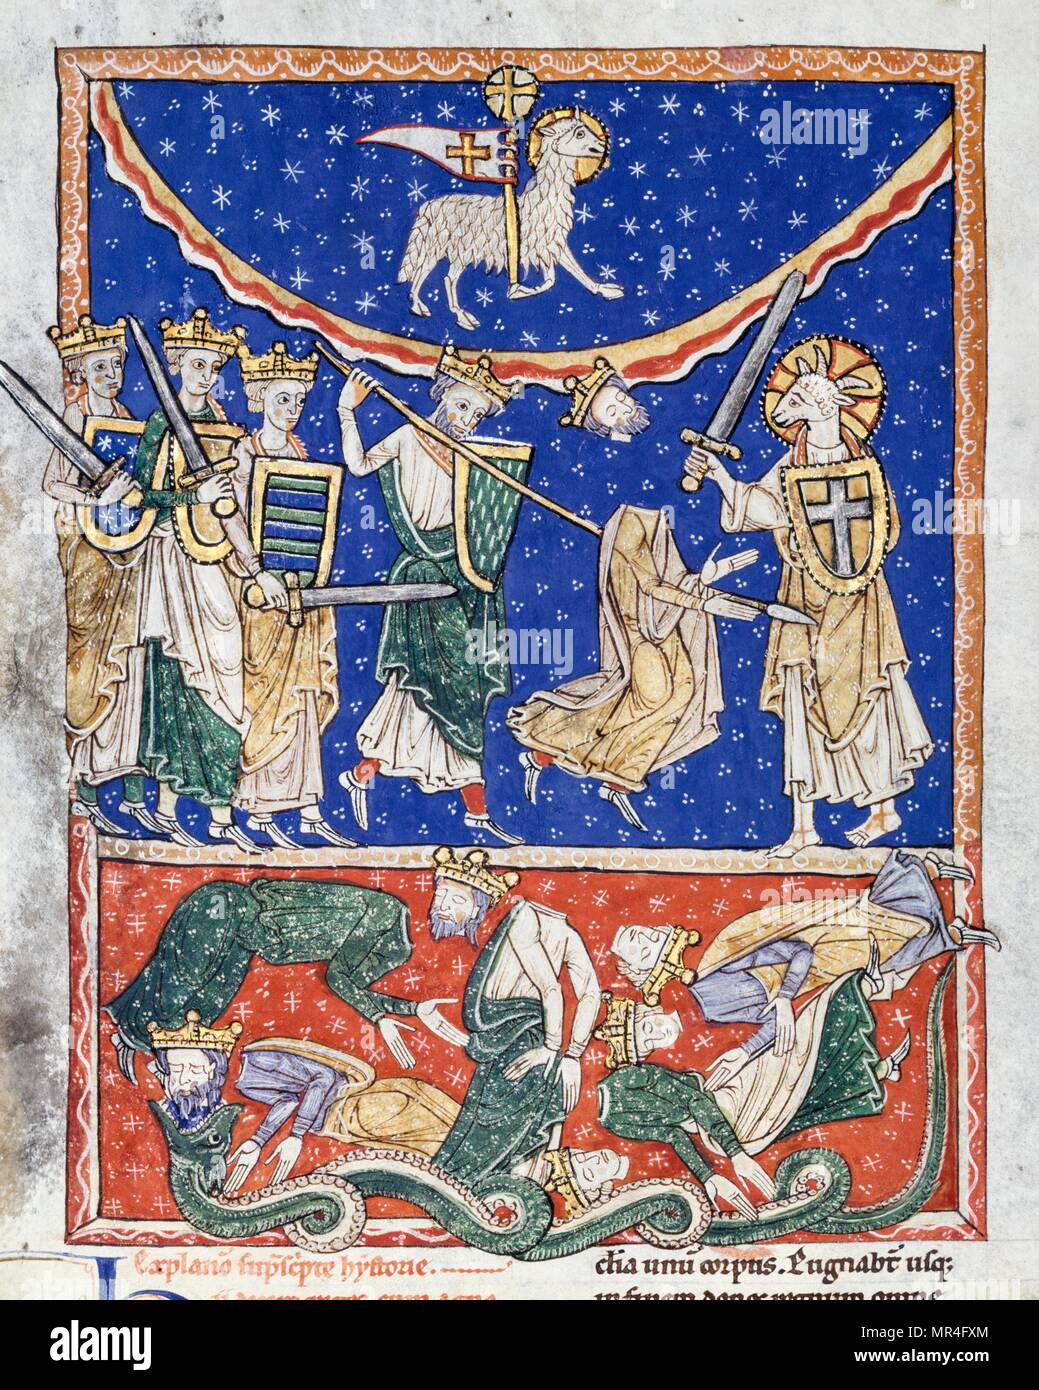 The Lamb Defeating the Ten Kings, Spanish, about 1220–35. Medieval illustration from the Beatus of Liébana (c. 800 Ad). Saint Beatus was a monk, theologian and geographer from the former Duchy of Cantabria and Kingdom of Asturias, in modern Cantabria, northern Spain, who worked and lived in the Picos de Europa mountains of the region of Liébana. He is best remembered today as the author of the Commentary on the Apocalypse - Stock Image